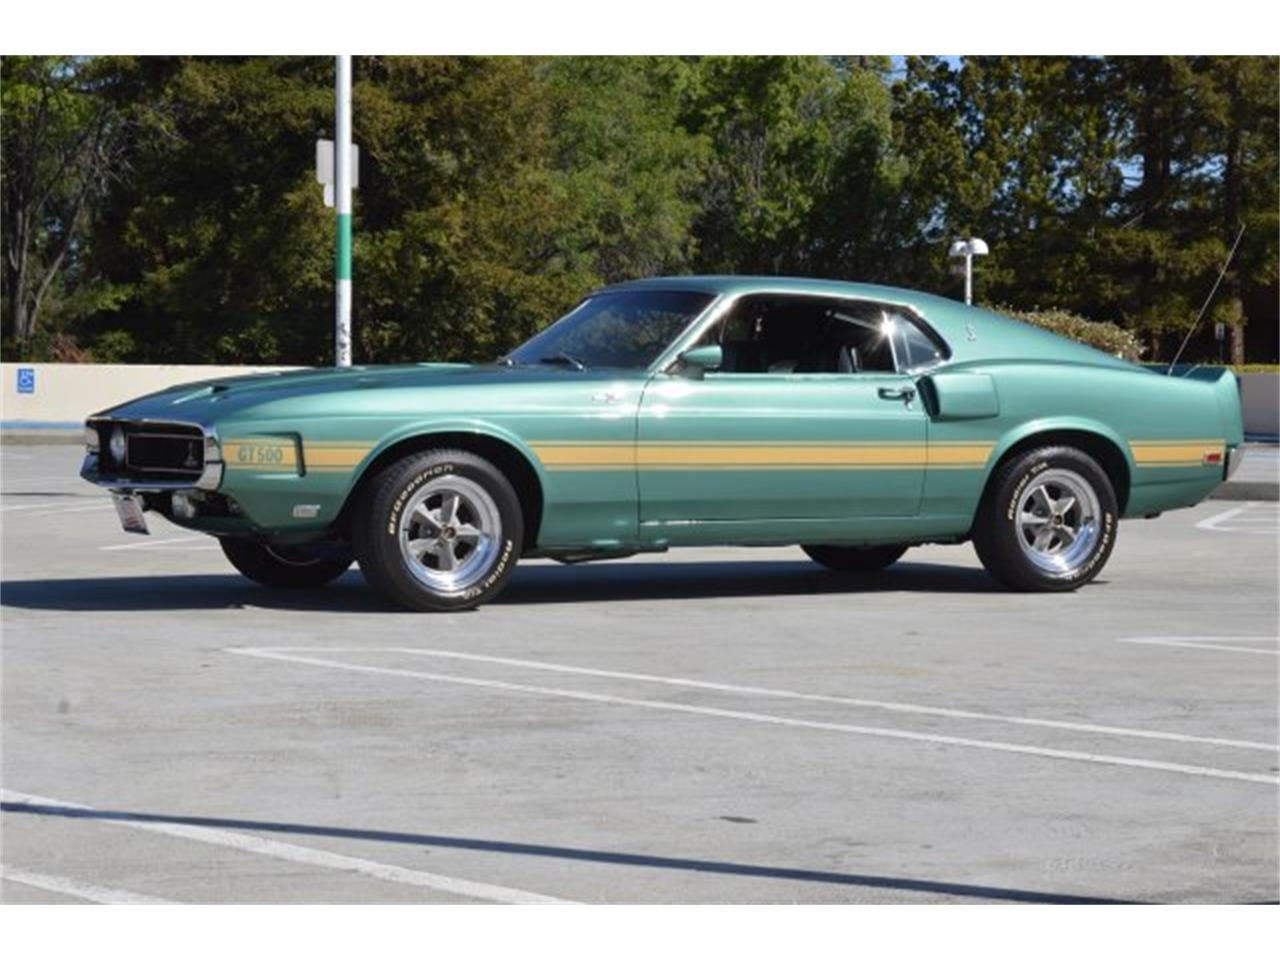 1969 Ford Mustang Shelby Gt500 For Sale Cc 1022553 Large Picture Of Located In California Lx09